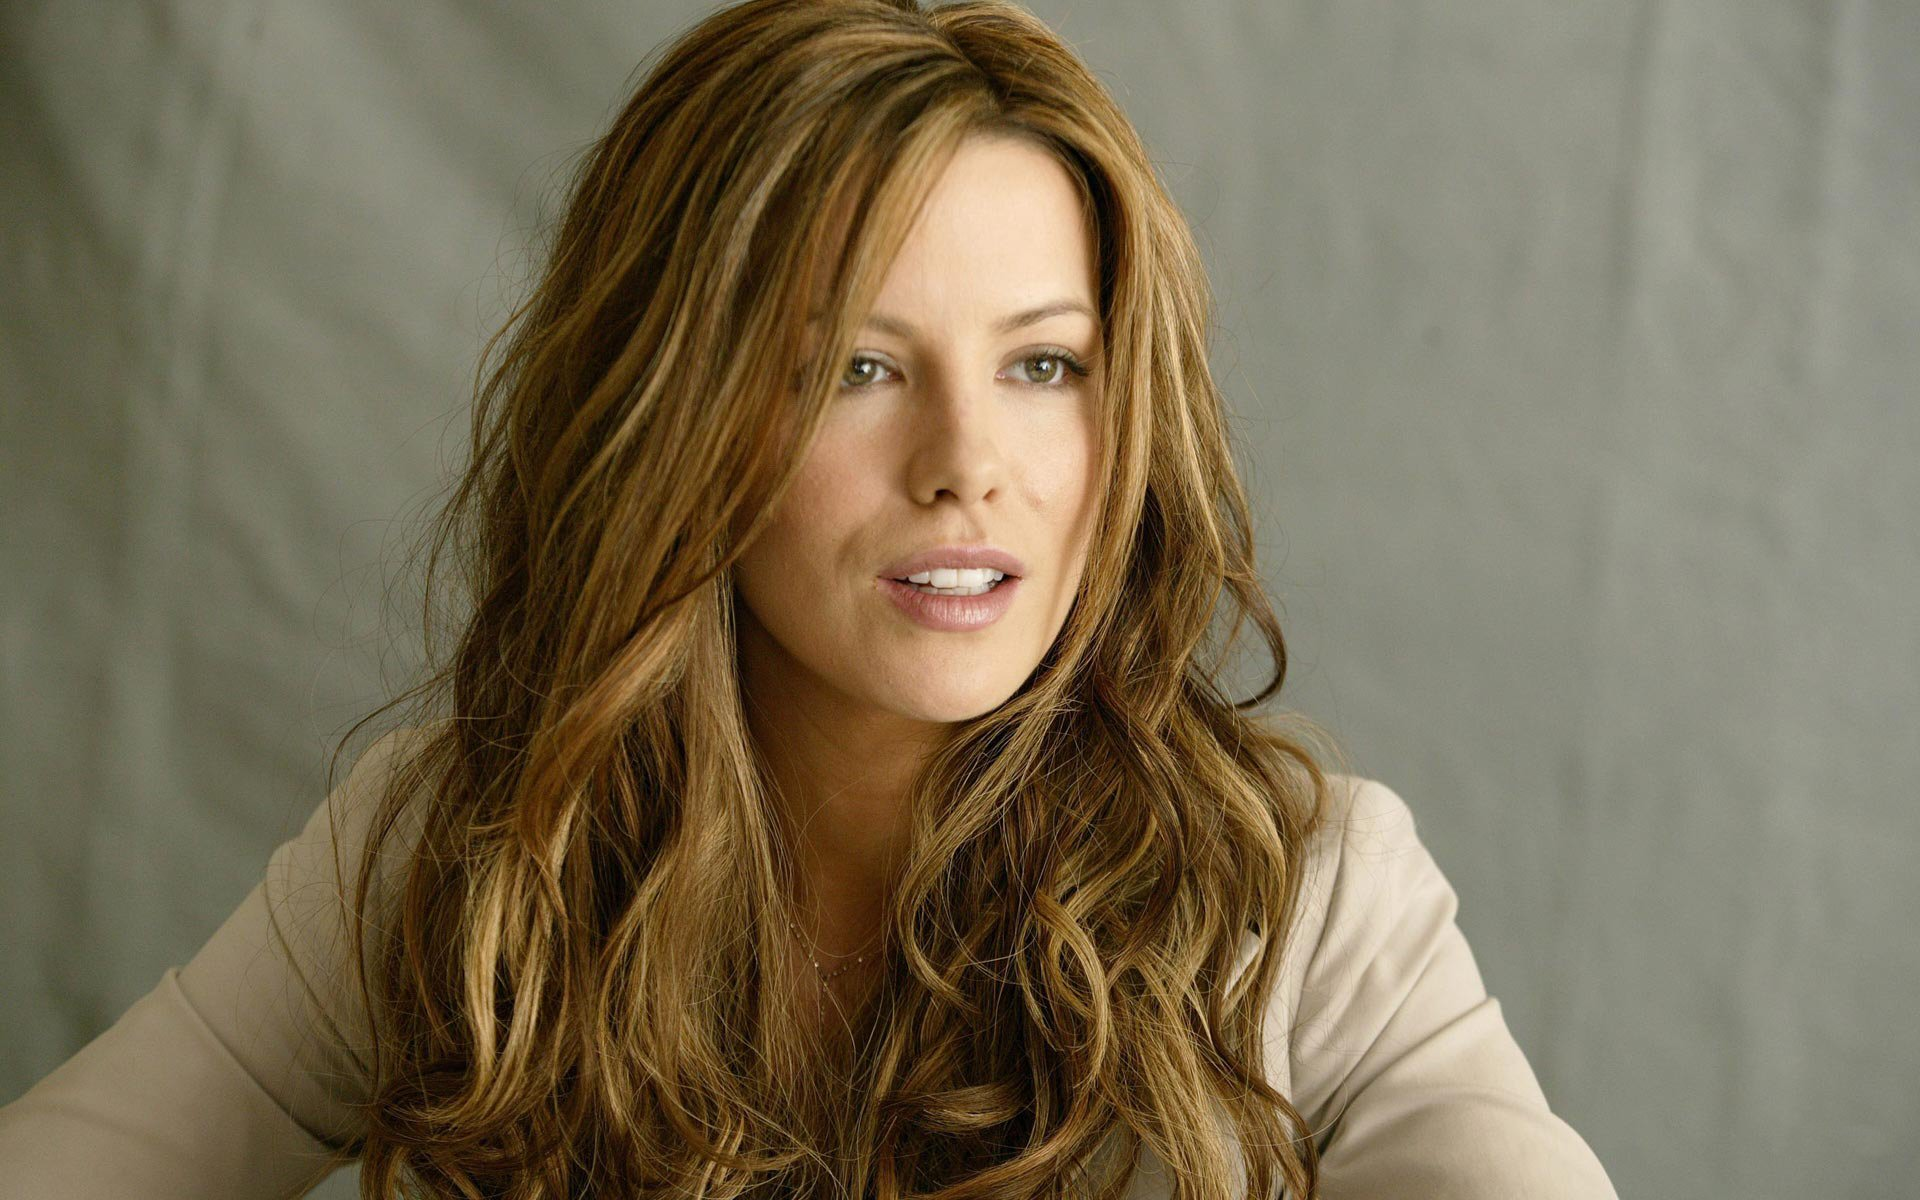 Kate beckinsale full hd wallpaper and background image - Celeb wallpapers ...